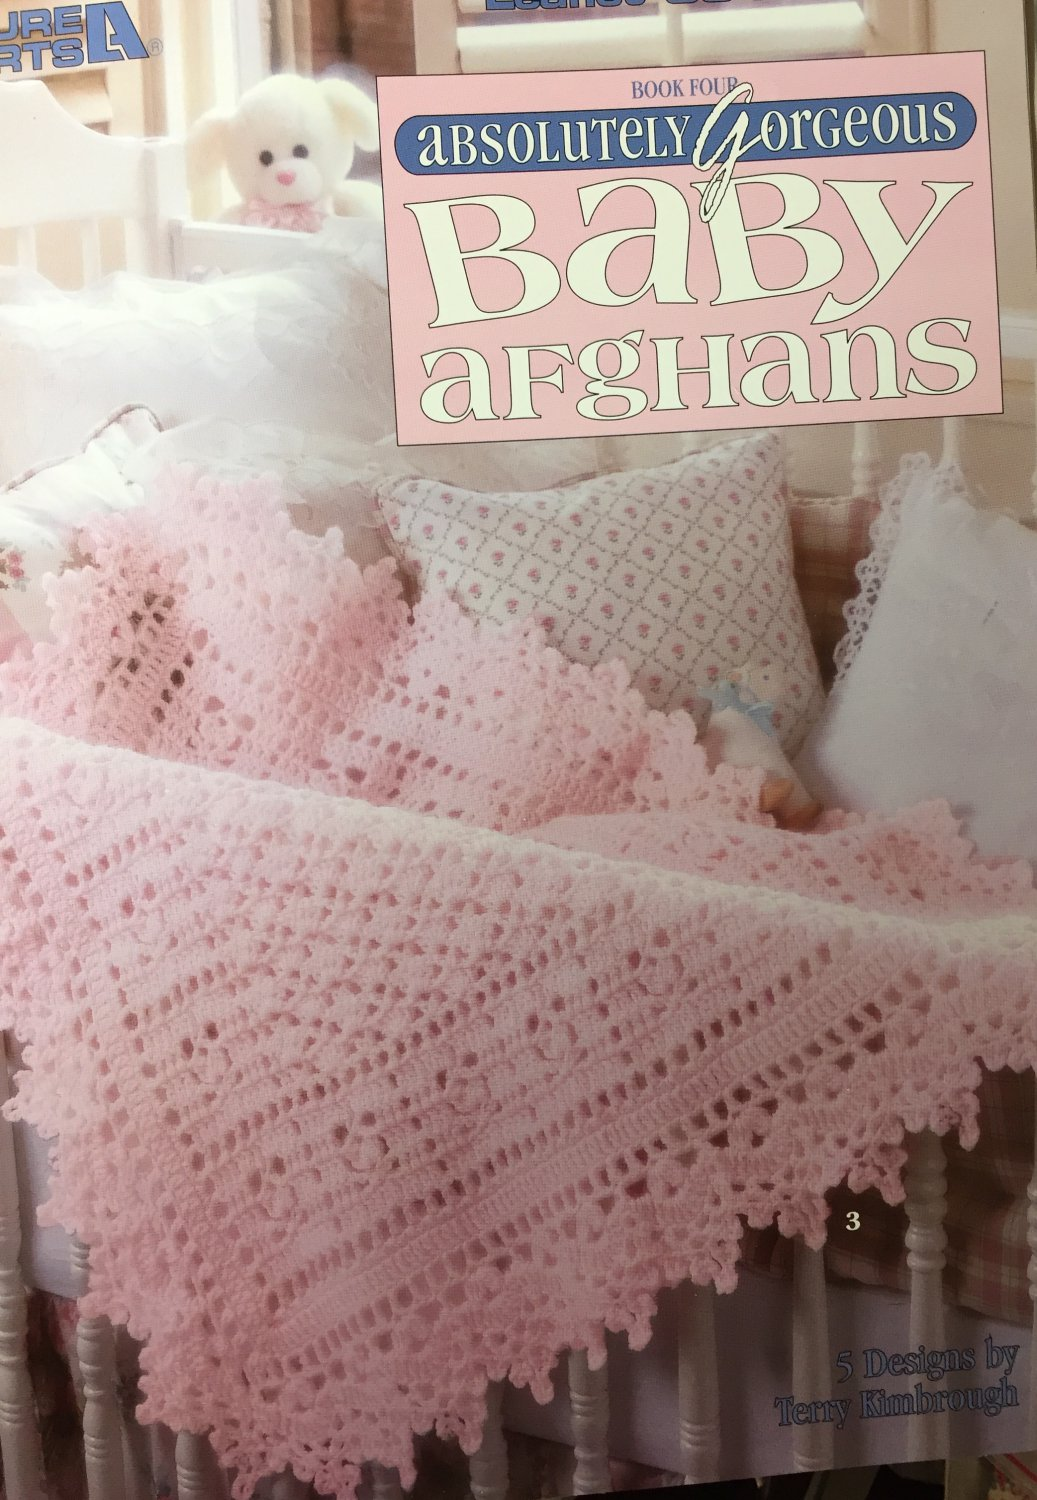 Absolutely Gorgeous Baby Afghans to crochet Leisure Arts 3015